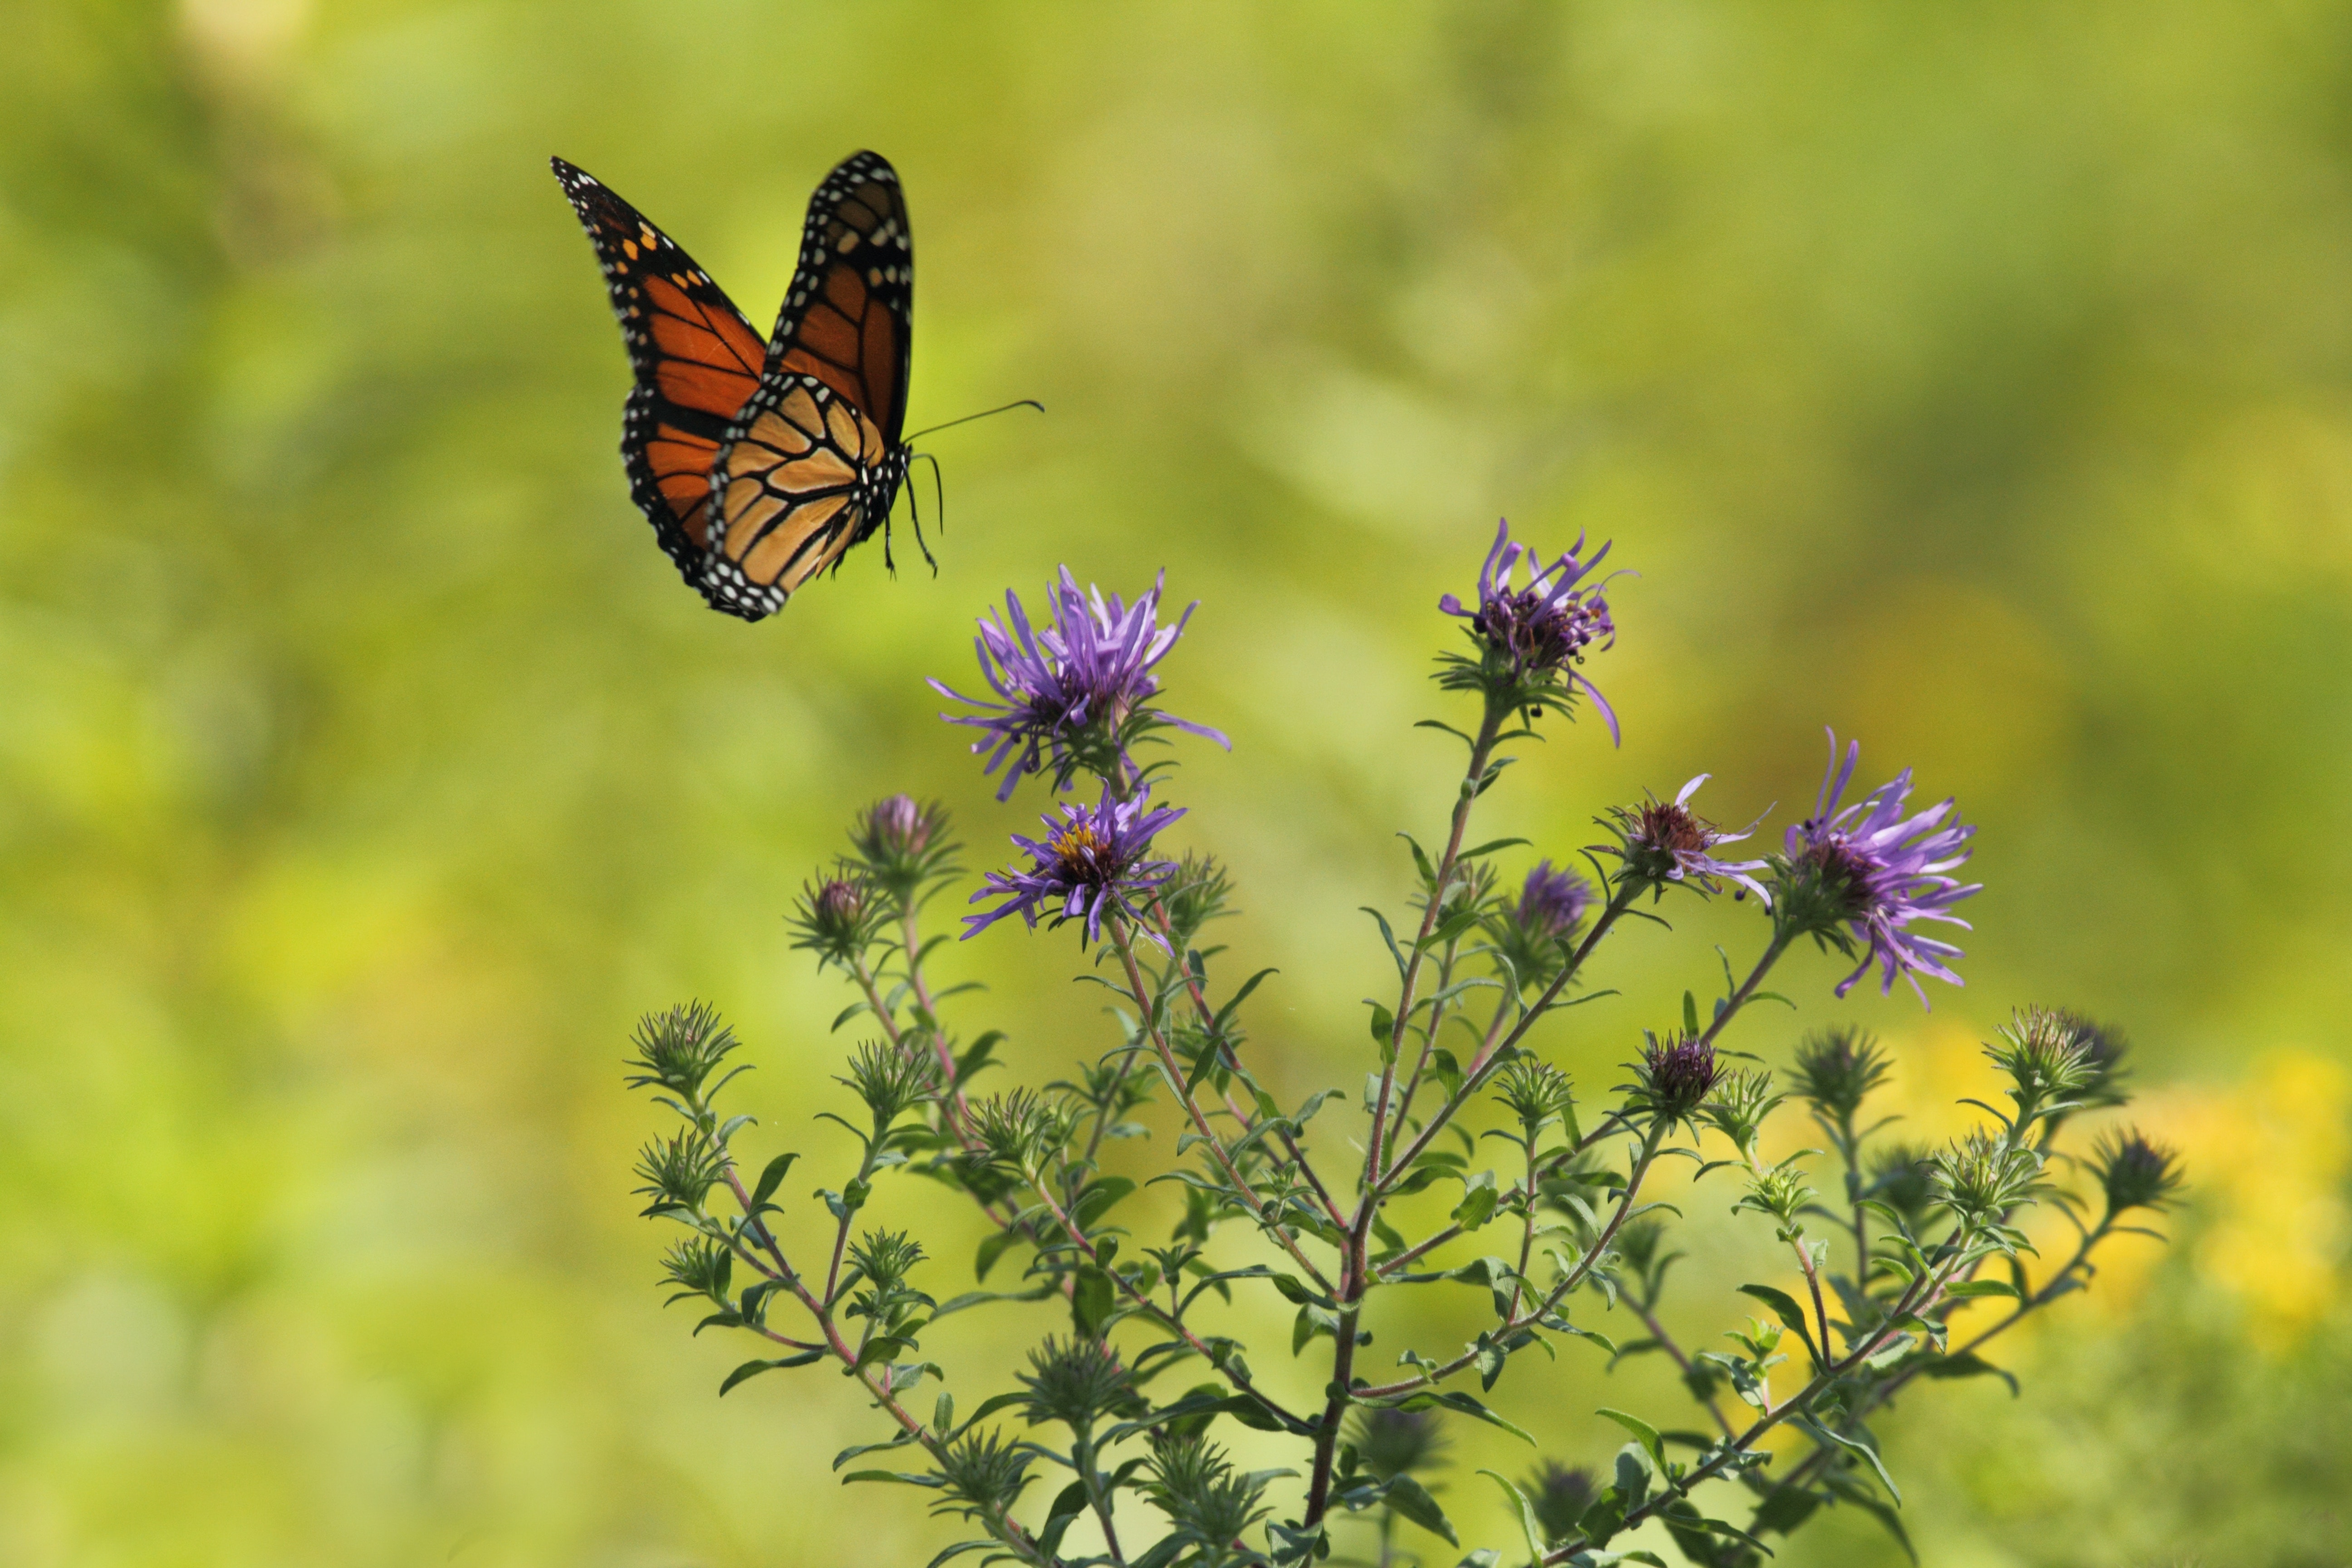 How-to-Attract-Butterflies-Honeybees-and-Hummingbirds-to-Your-Windowsill